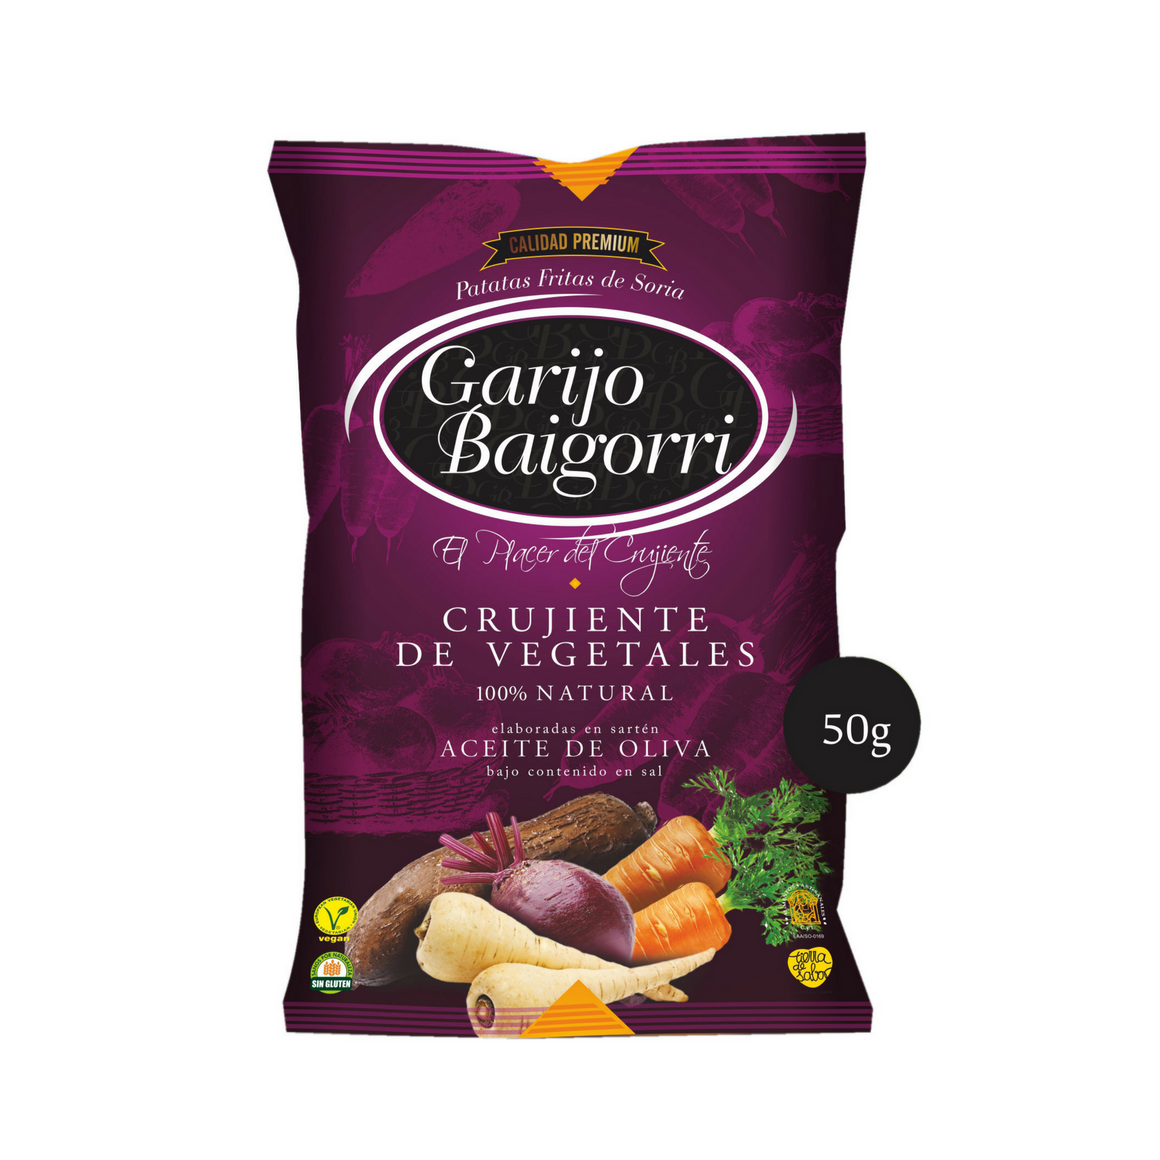 Crujientes de Vegetales 50 g , pack de 5 Unidades - Sp4in.com Spanish Products Omnichannel Marketplace